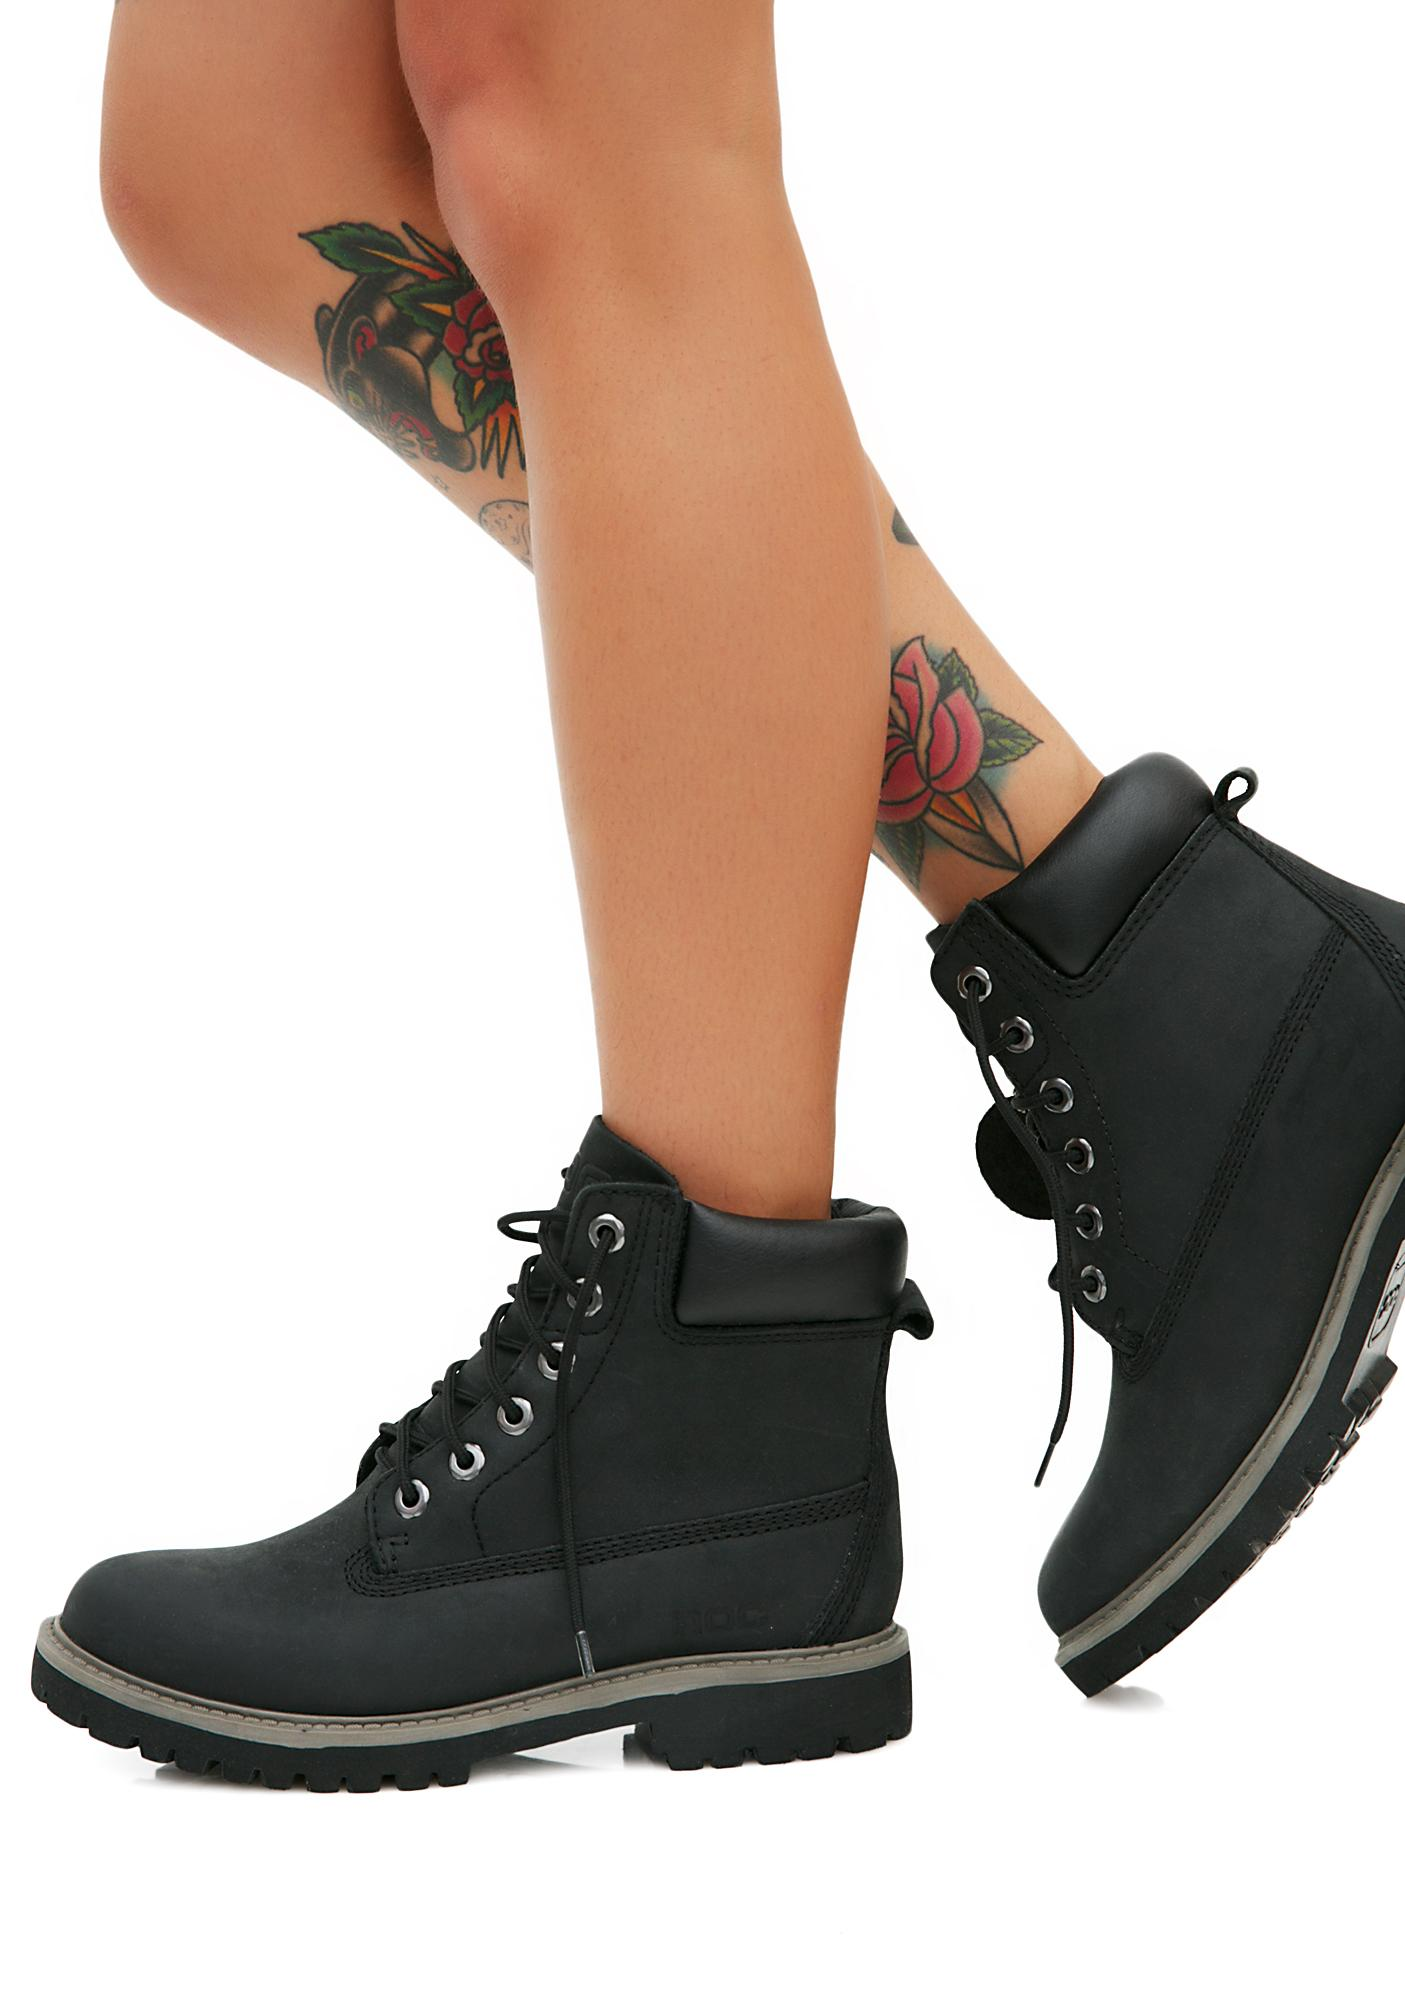 ROC Boots Charcoal Rover Boots